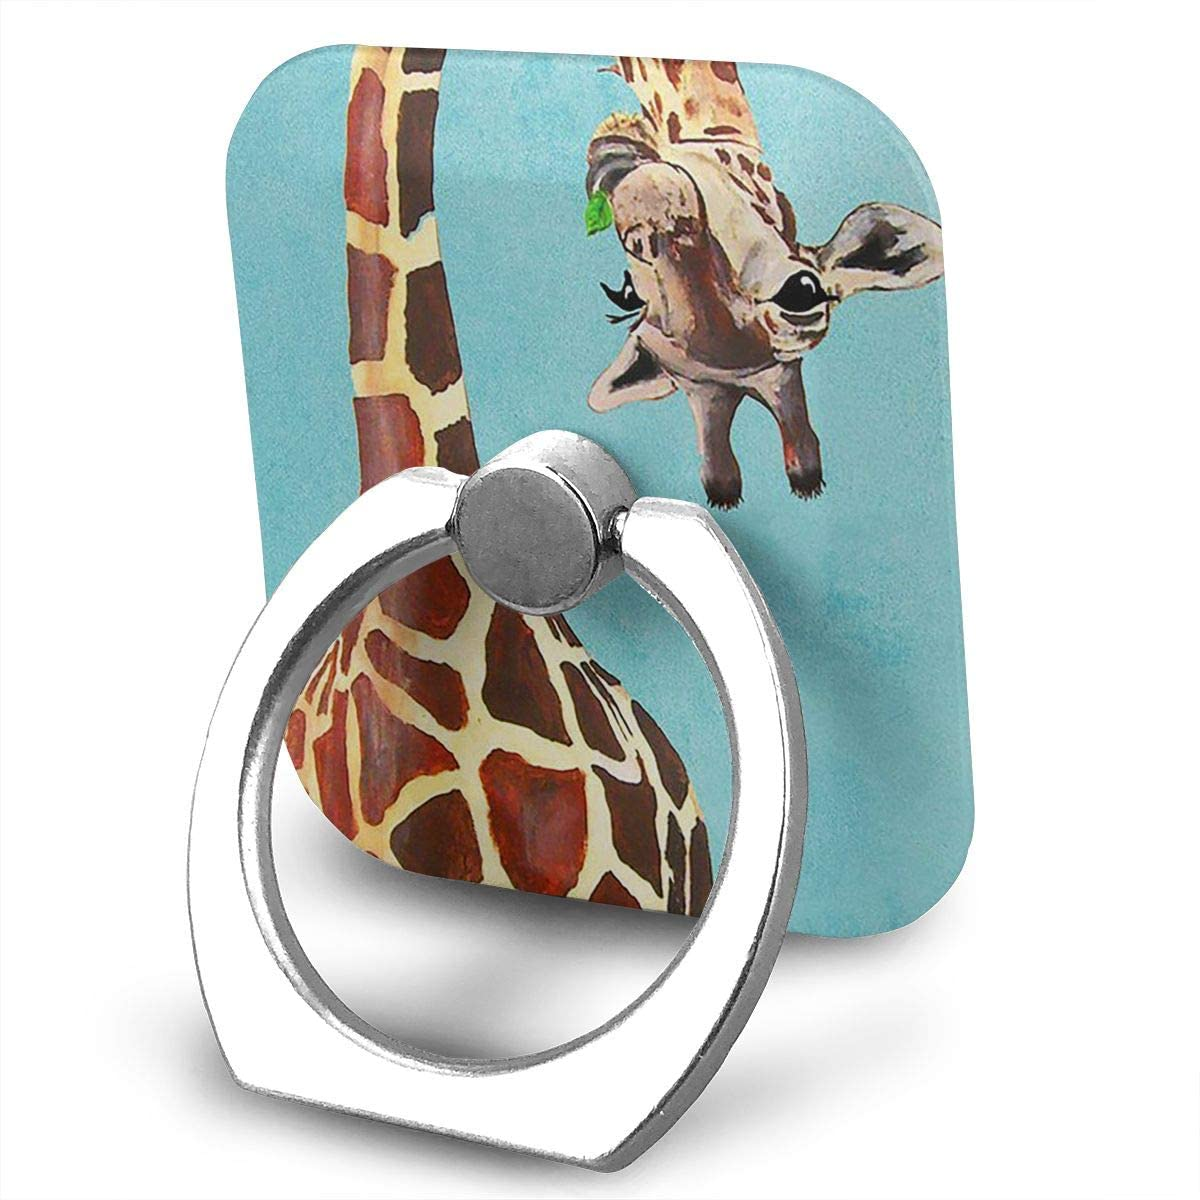 BLDBZQ Cell Phone Ring Holder Funny Giraffe Finger Grip Stand Holder 360 Degrees Rotation Compatible with iPhone Samsung Phone Case